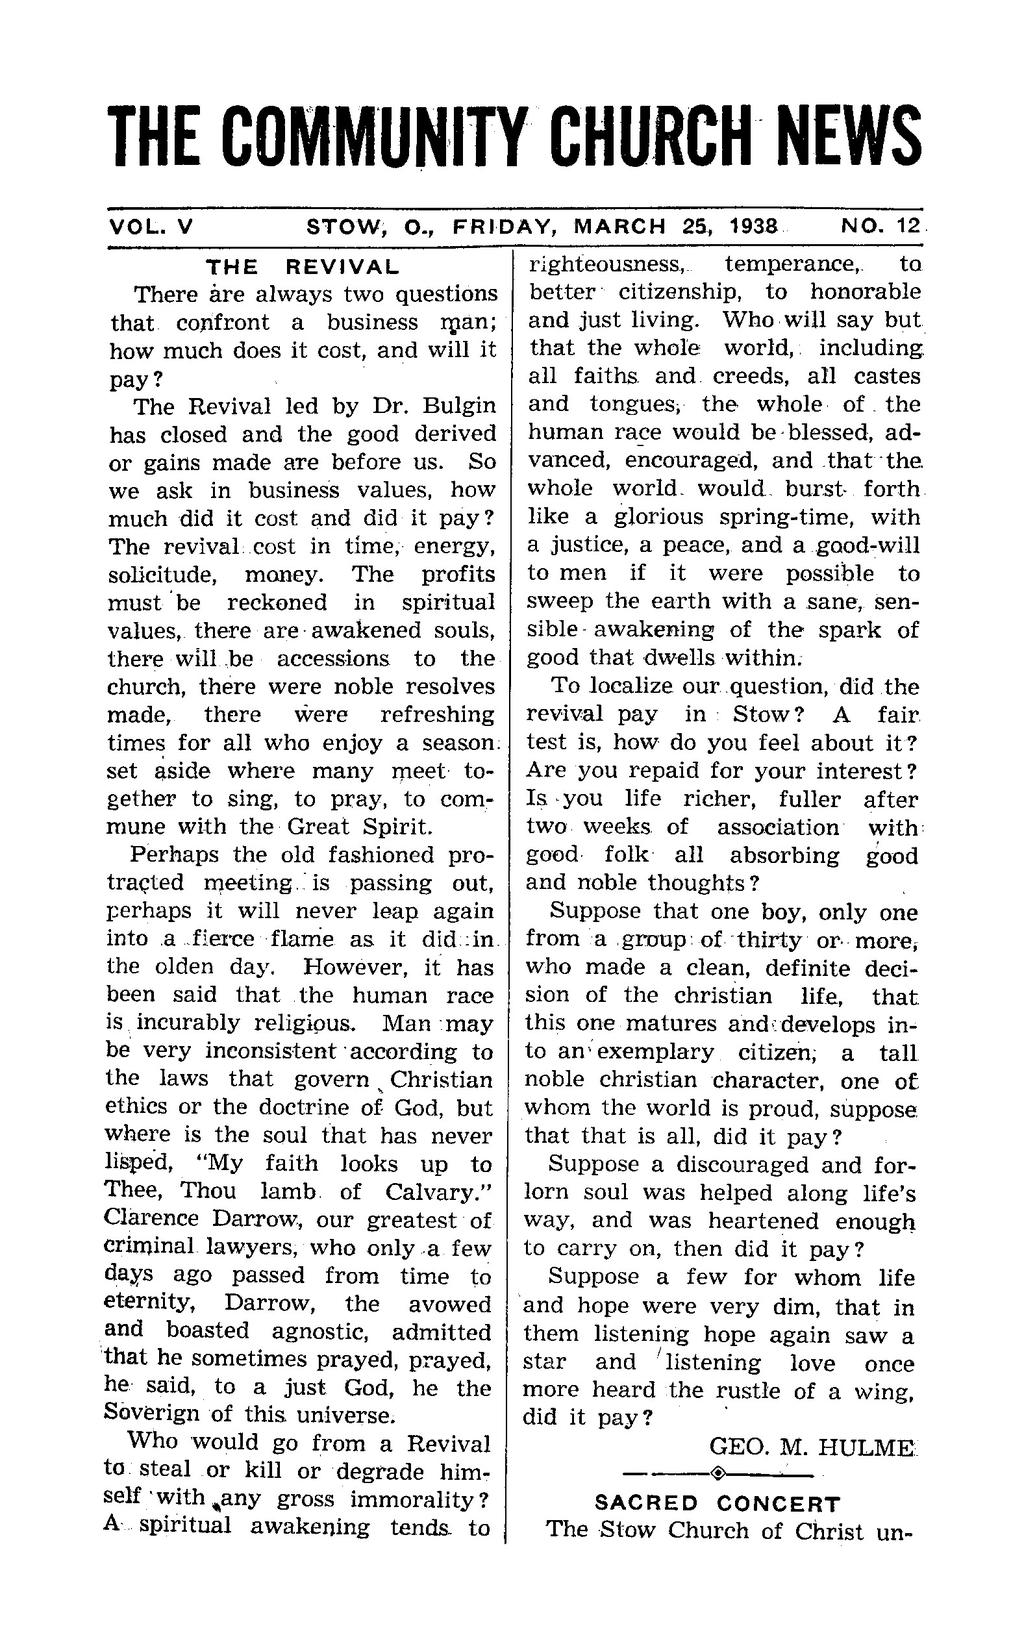 THE COMMUNITY CHURCH NEWS VOL. V S T O W, O., F R I D A Y, MARCH 25, 1938 THE REVIVAL There are always two questions that confront a business rpan; how much does it cost, and will it pay?